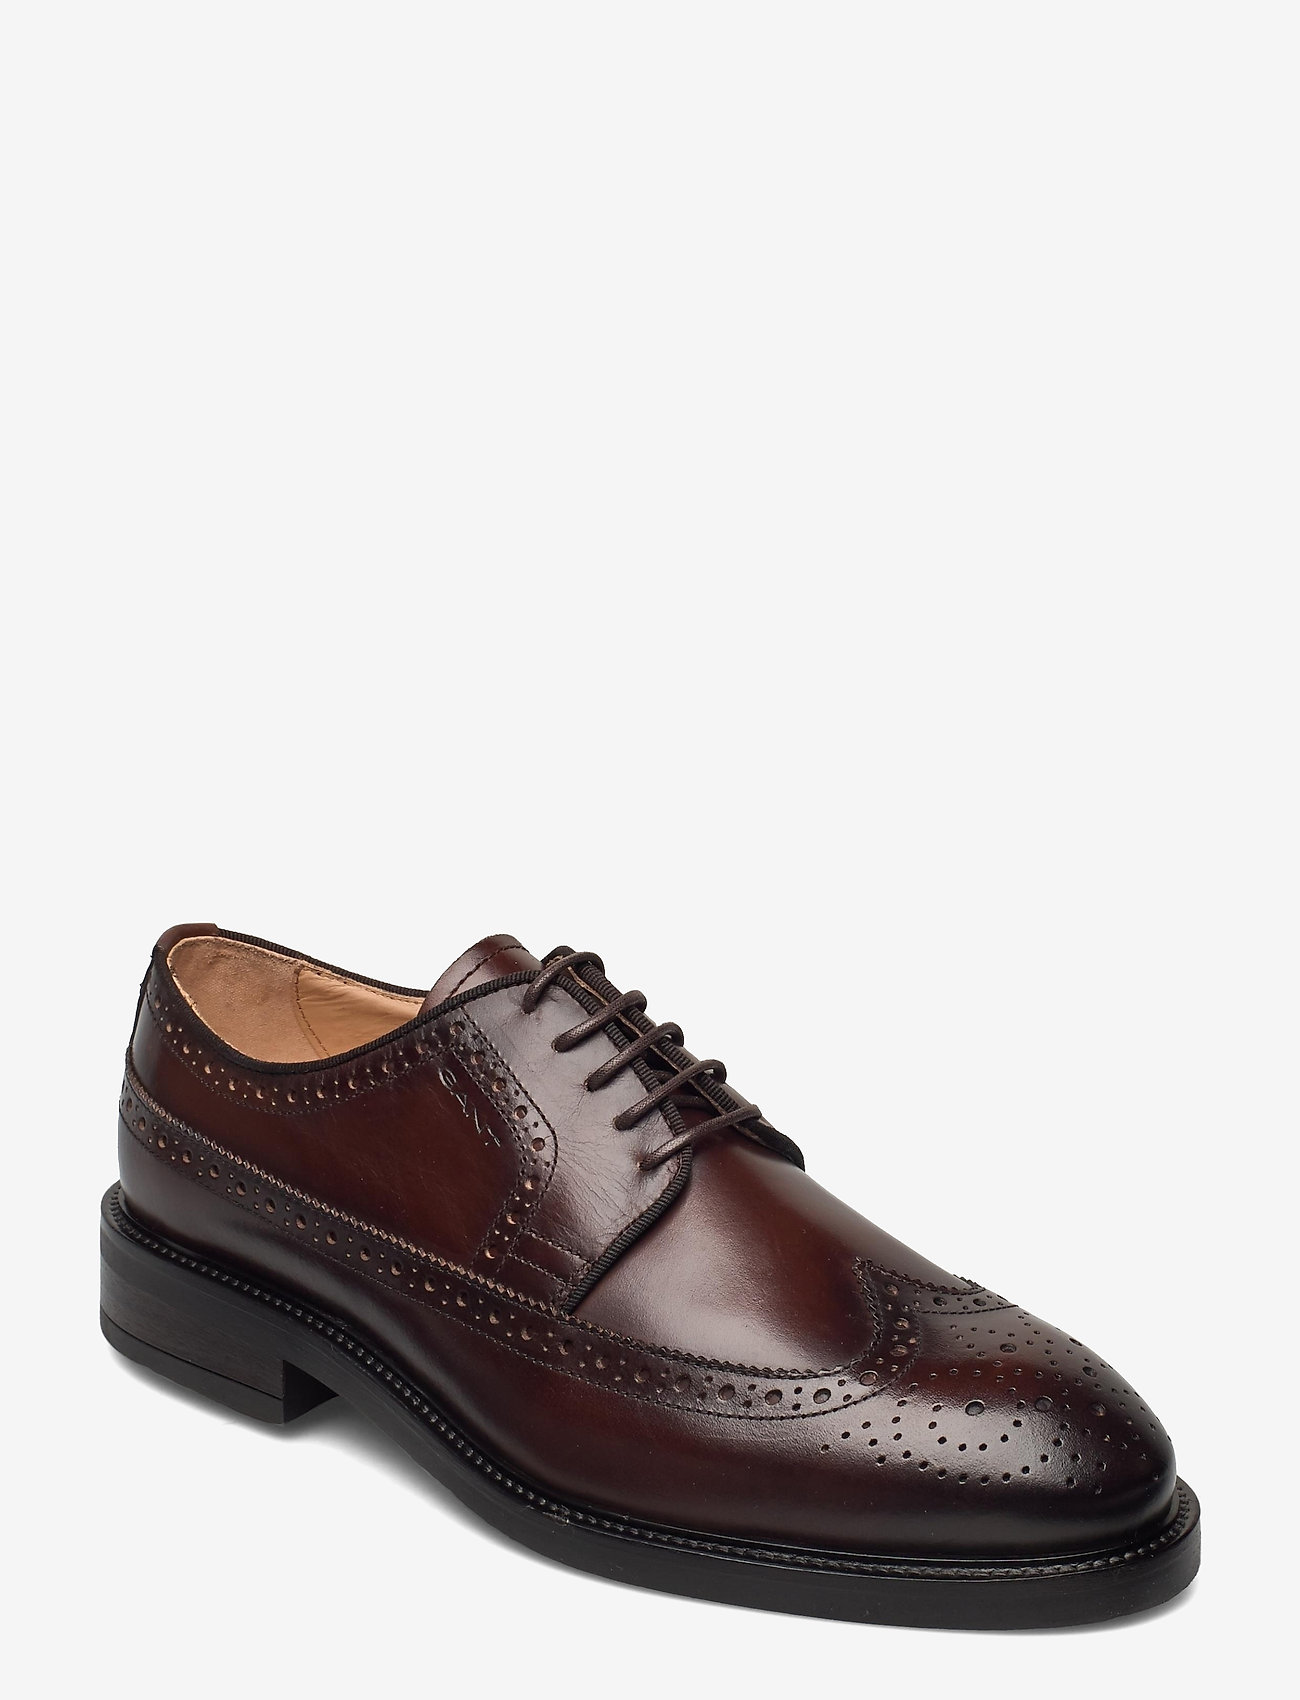 GANT - Flairville Low lace - laced shoes - cognac - 0